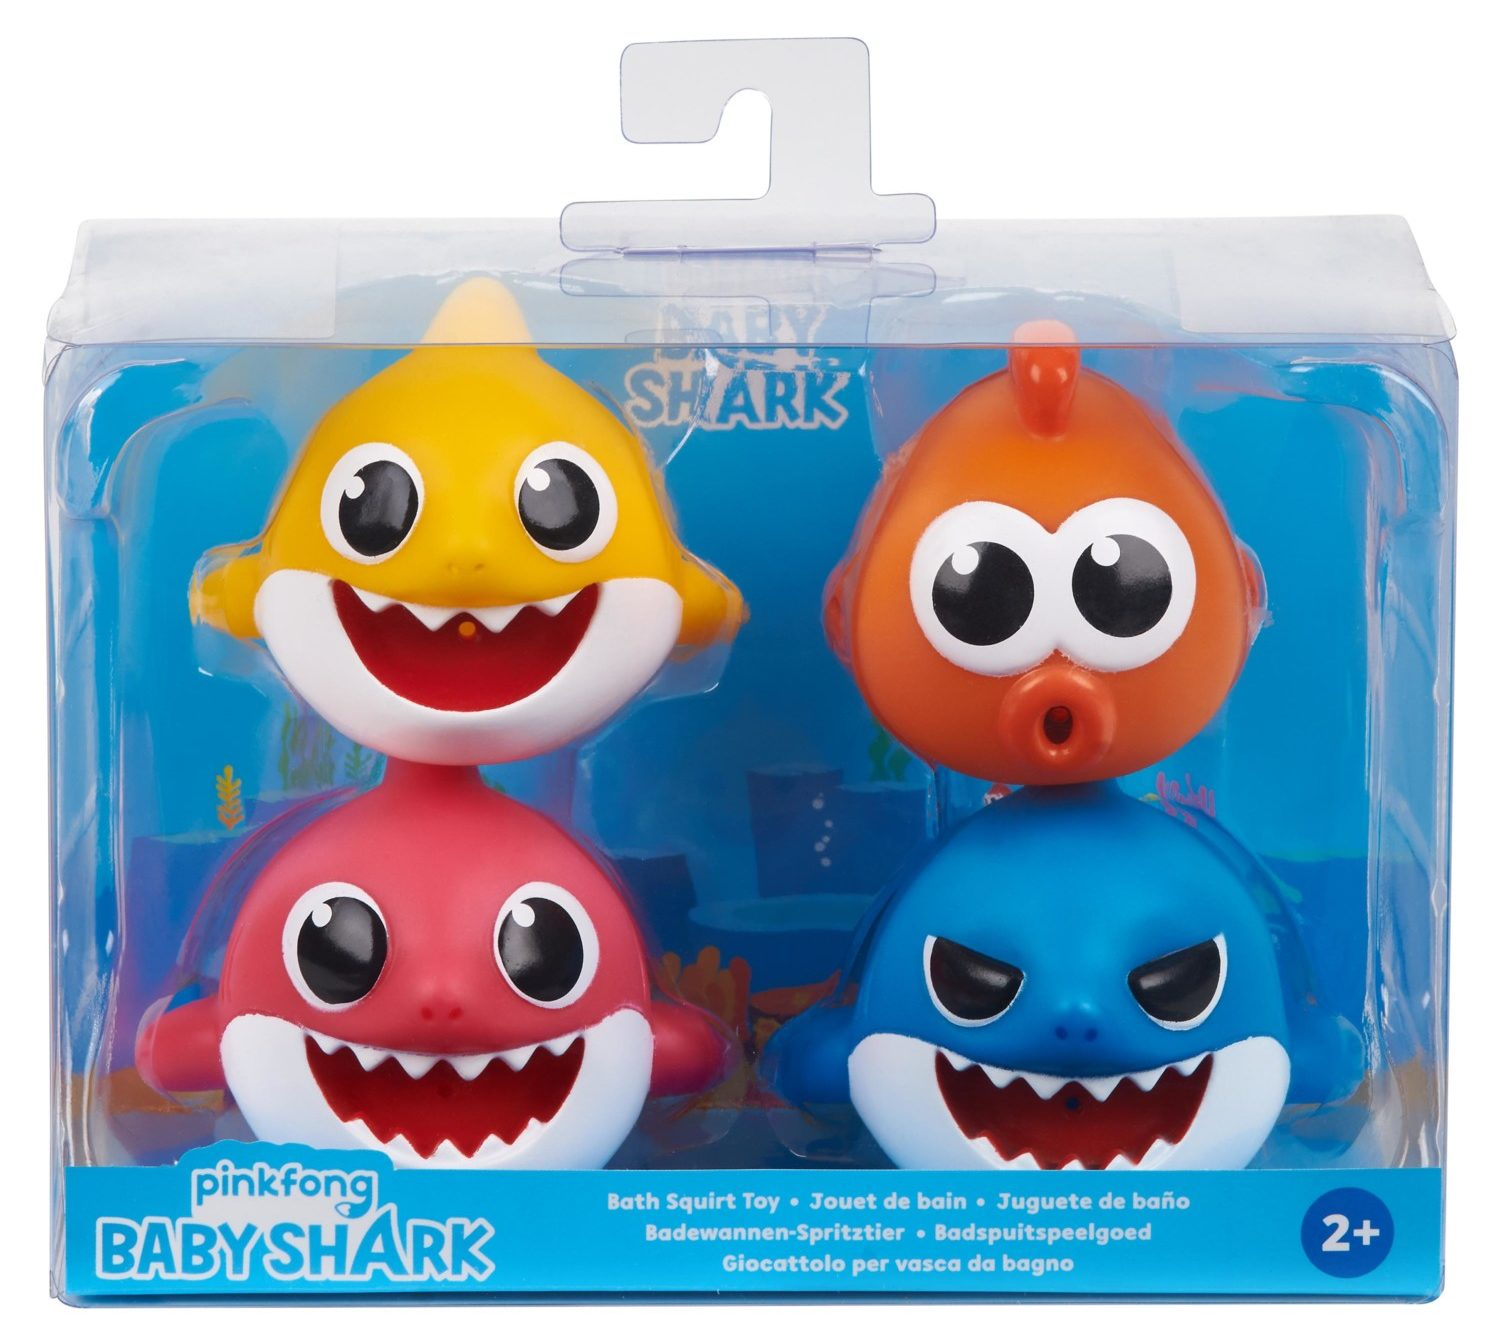 All The Baby Shark Toys On The Market